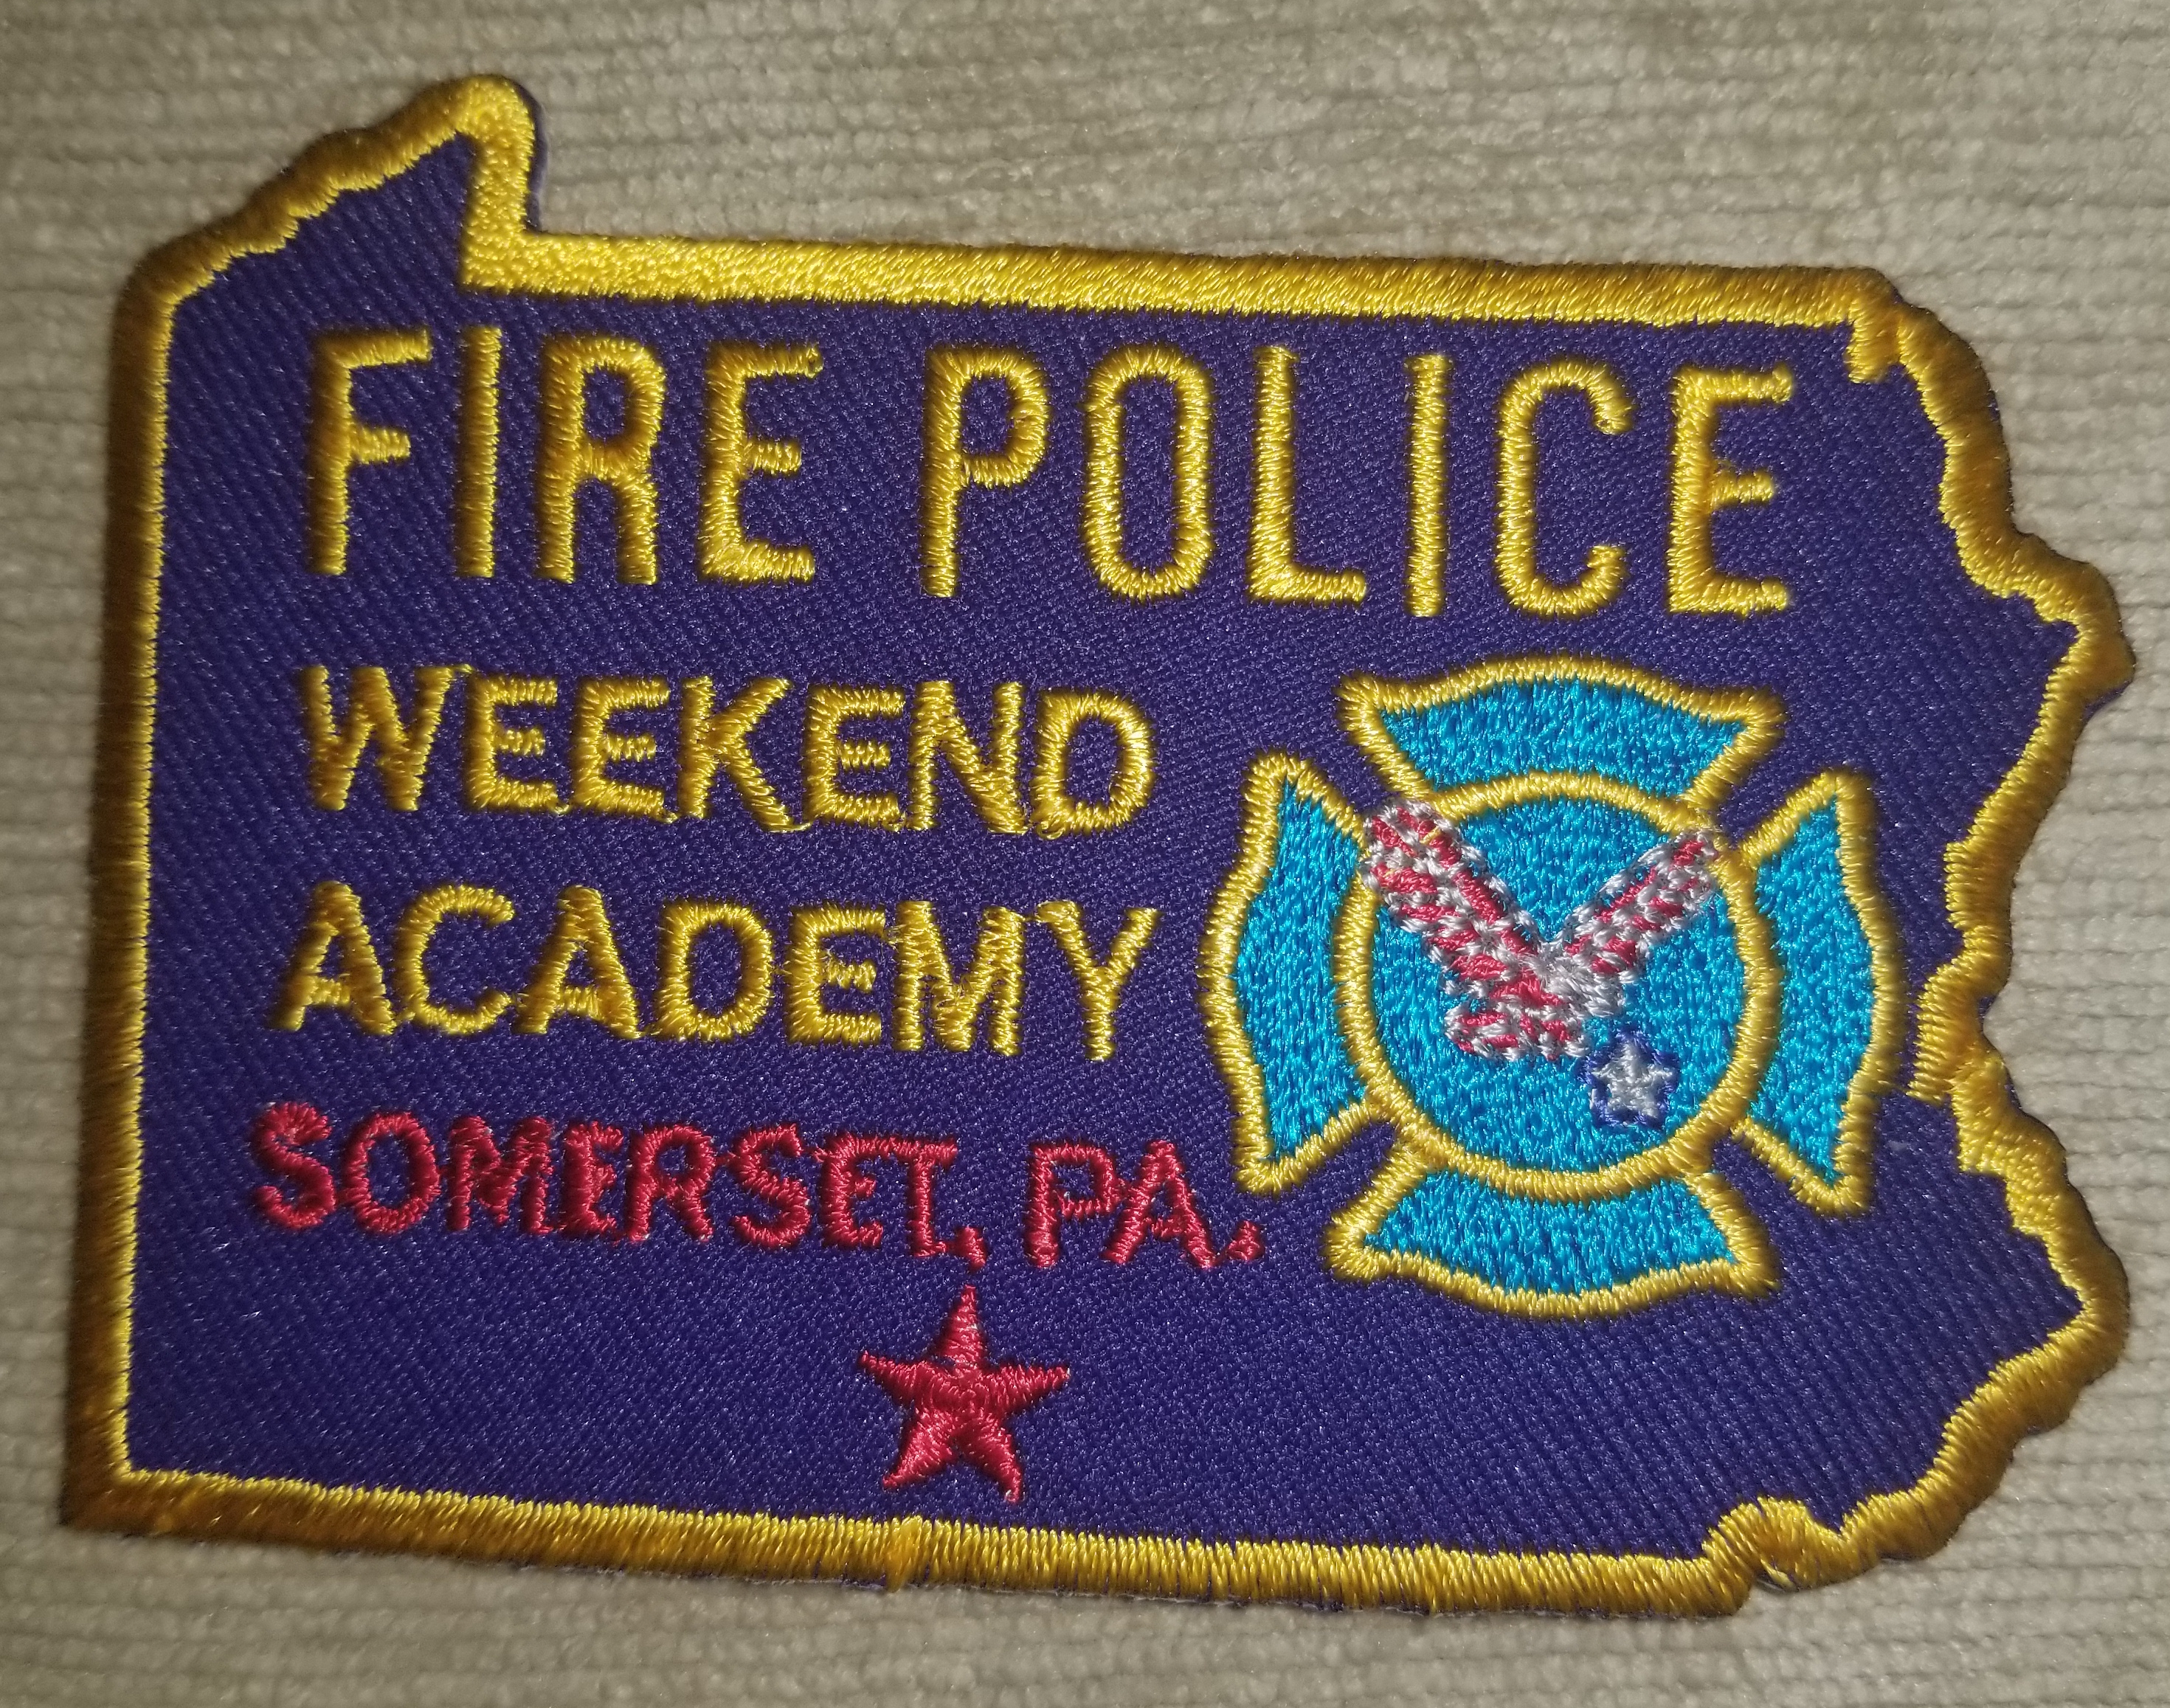 Somerset Fire Police Weekend Academy PA.